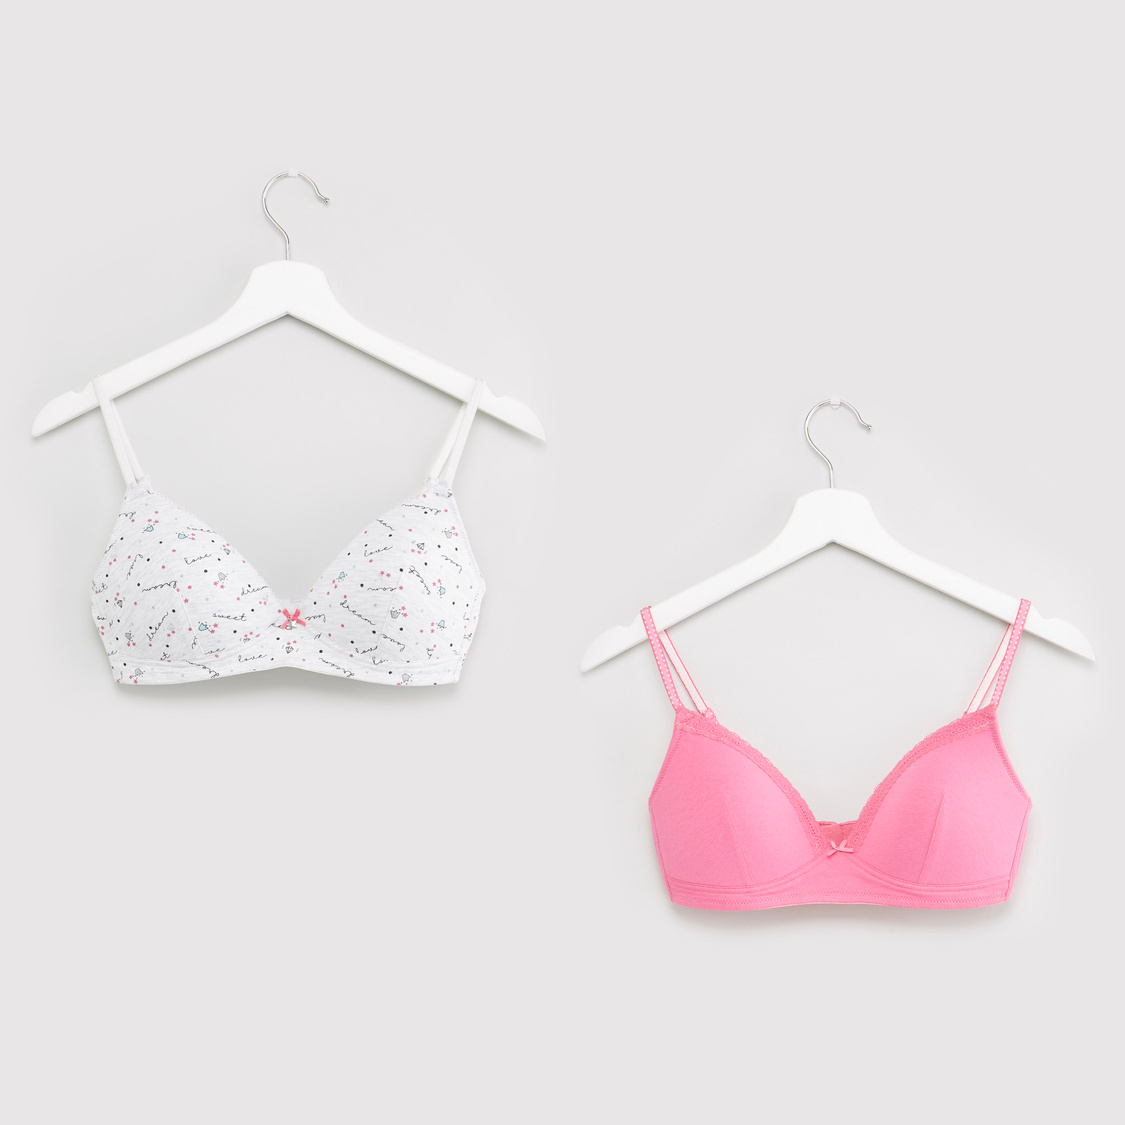 Set of 2 - Padded Non-Wired T-shirt Bra with Adjustable Straps